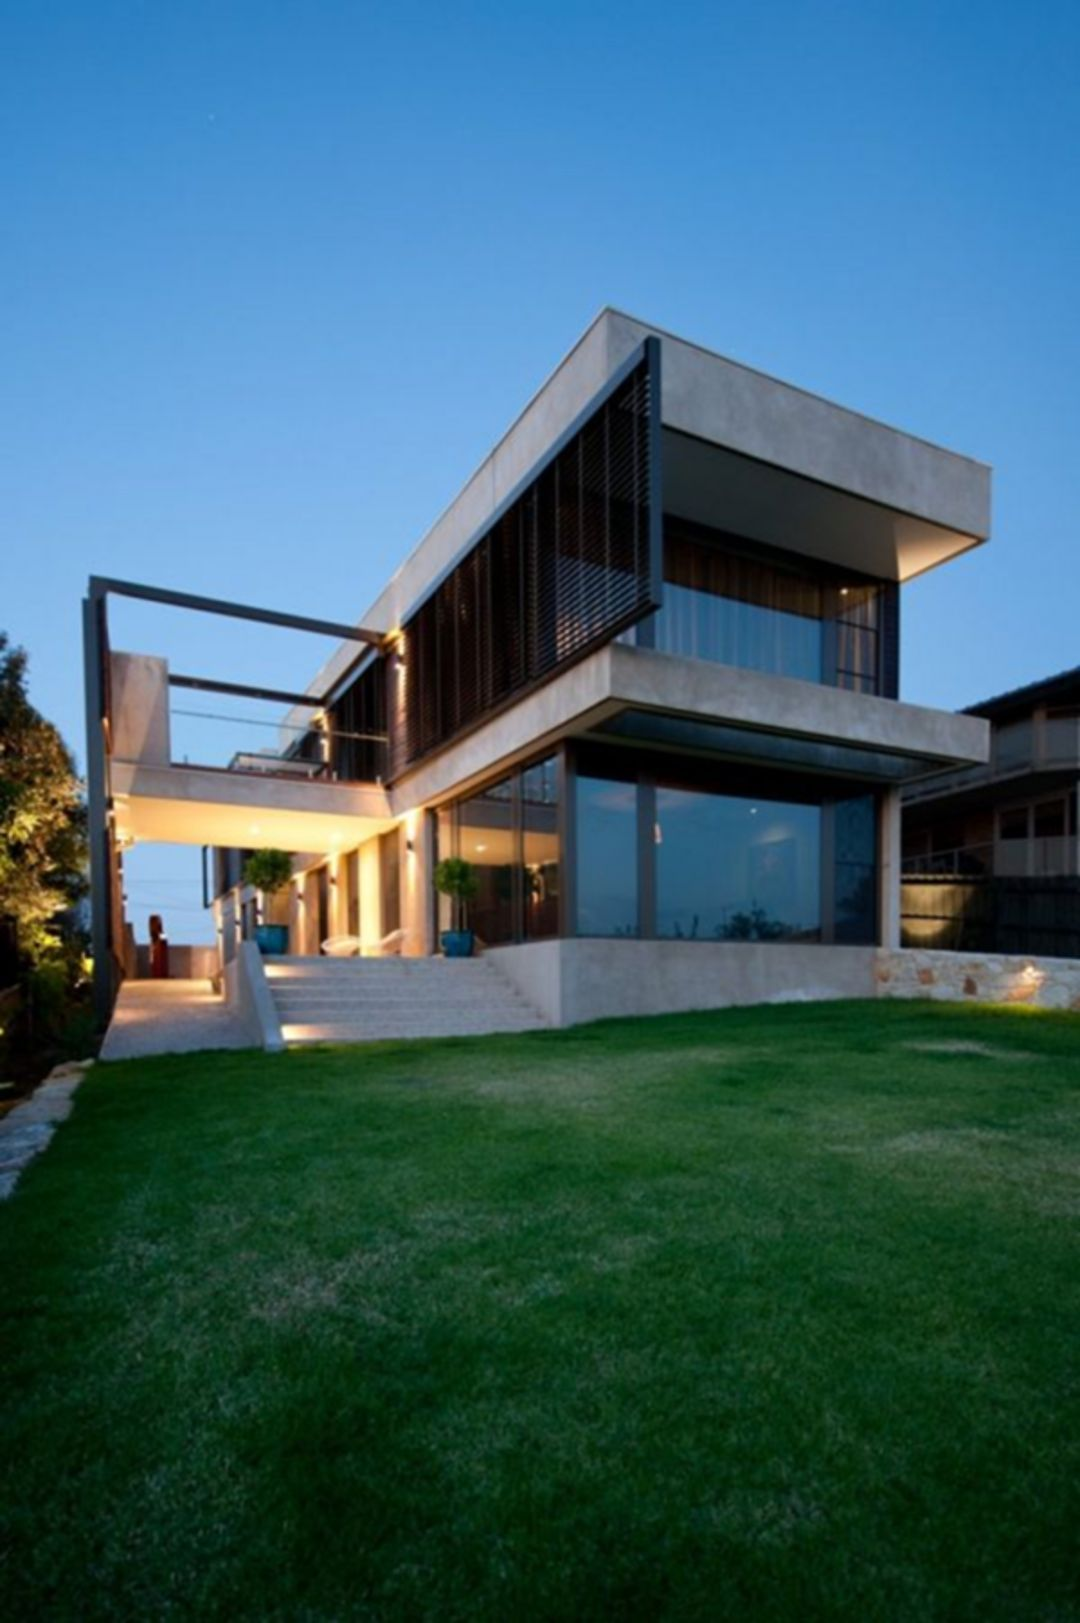 Marvelous 25 beautiful home architecture ideas on a hill https hroomy com